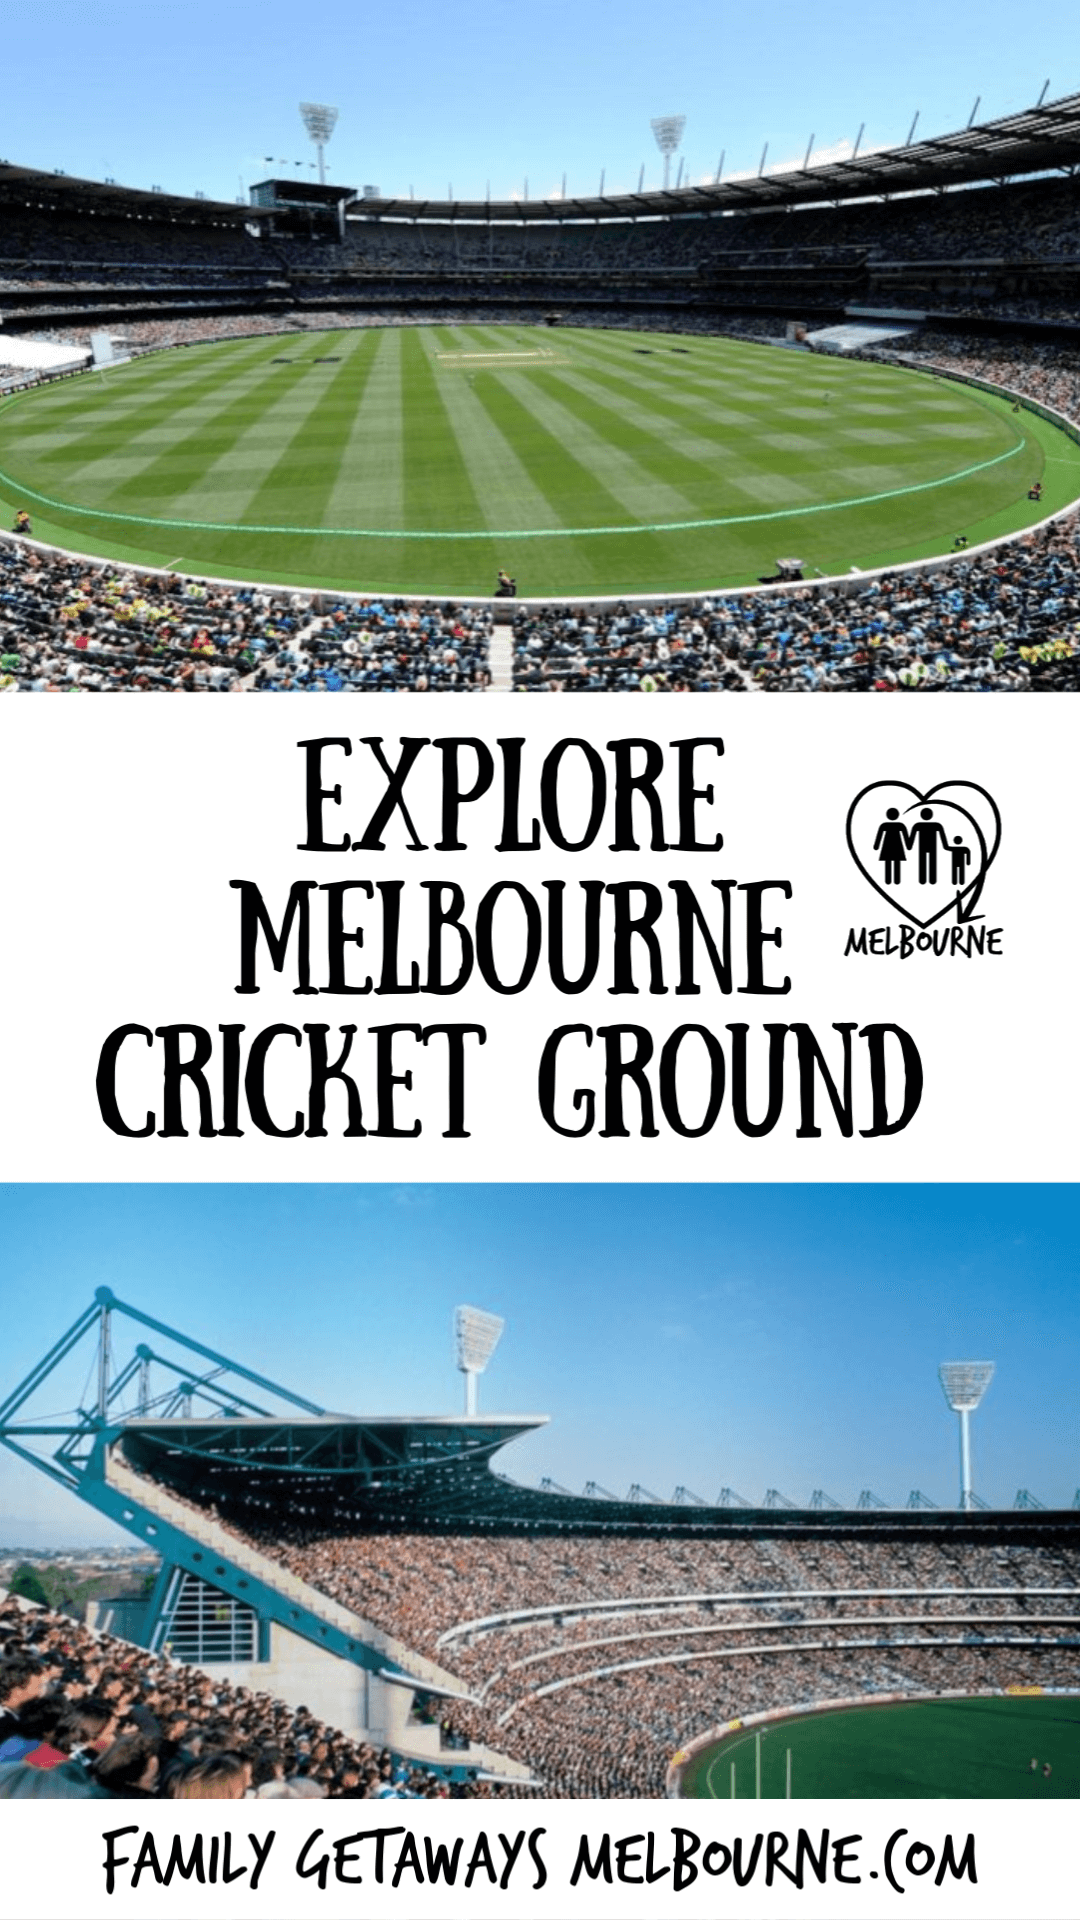 image to pin to pinterest for Melbourne Cricket Ground